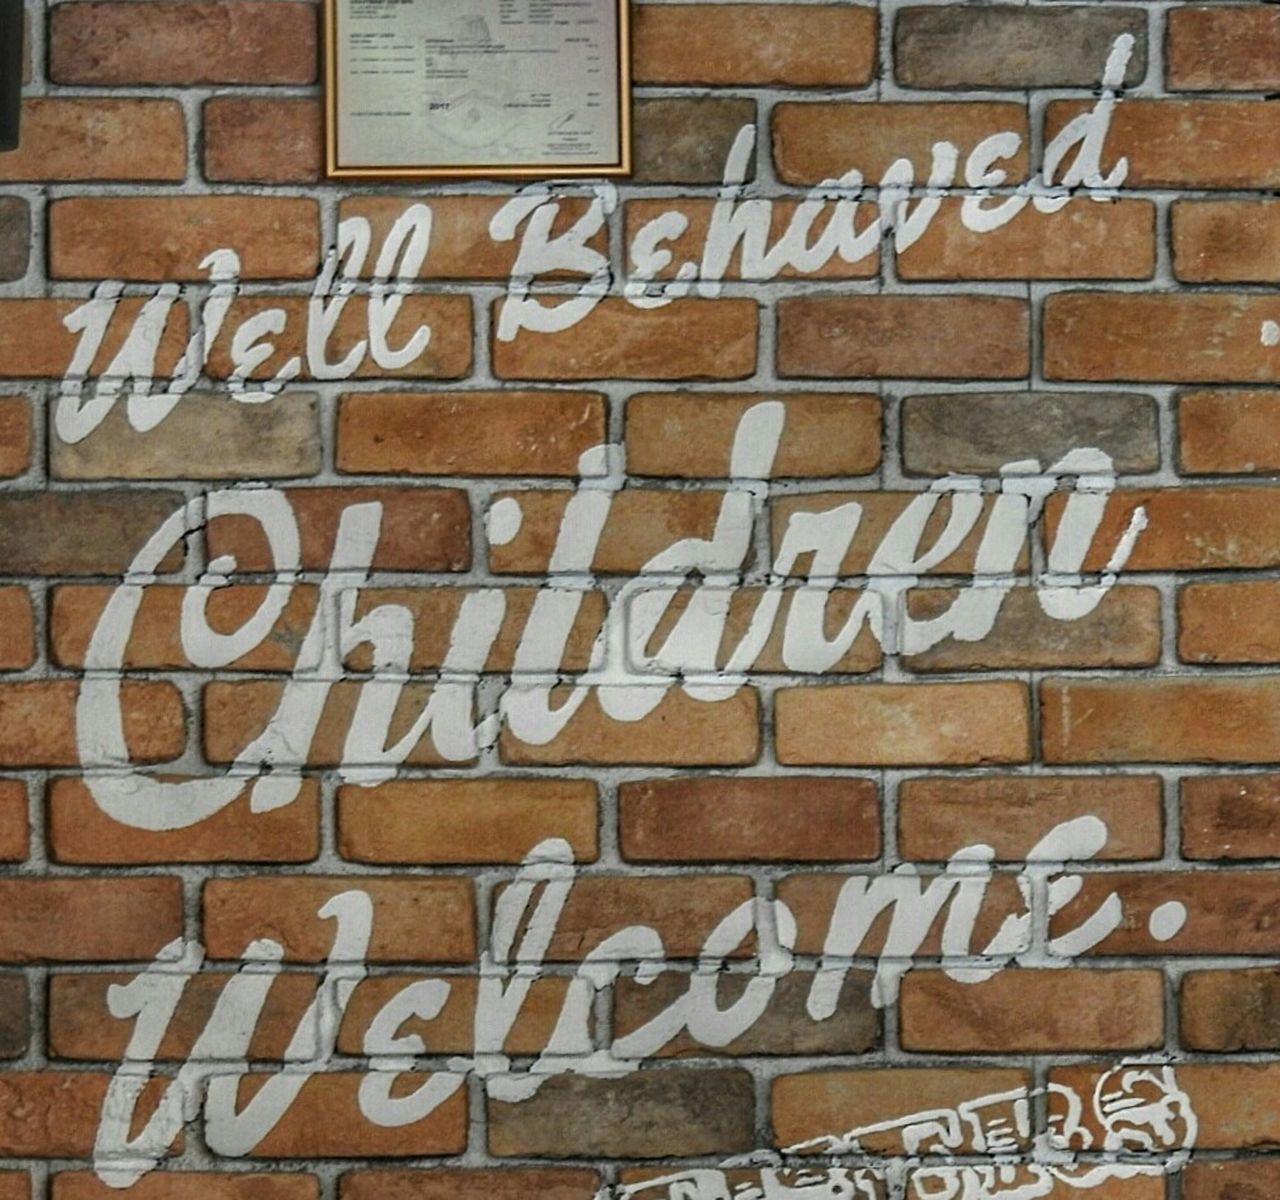 Signage Bricks Greeting Gravy Baby Taman Desa Malaysia Kuala Lumpur Restaurant On The Wall Brickwork  Wall Advice Wording Words Of Wisdom Words Good Advice Welcome Behave Rules Telling It How It Is Raising Children Good Parenting Peace Sentence Brick